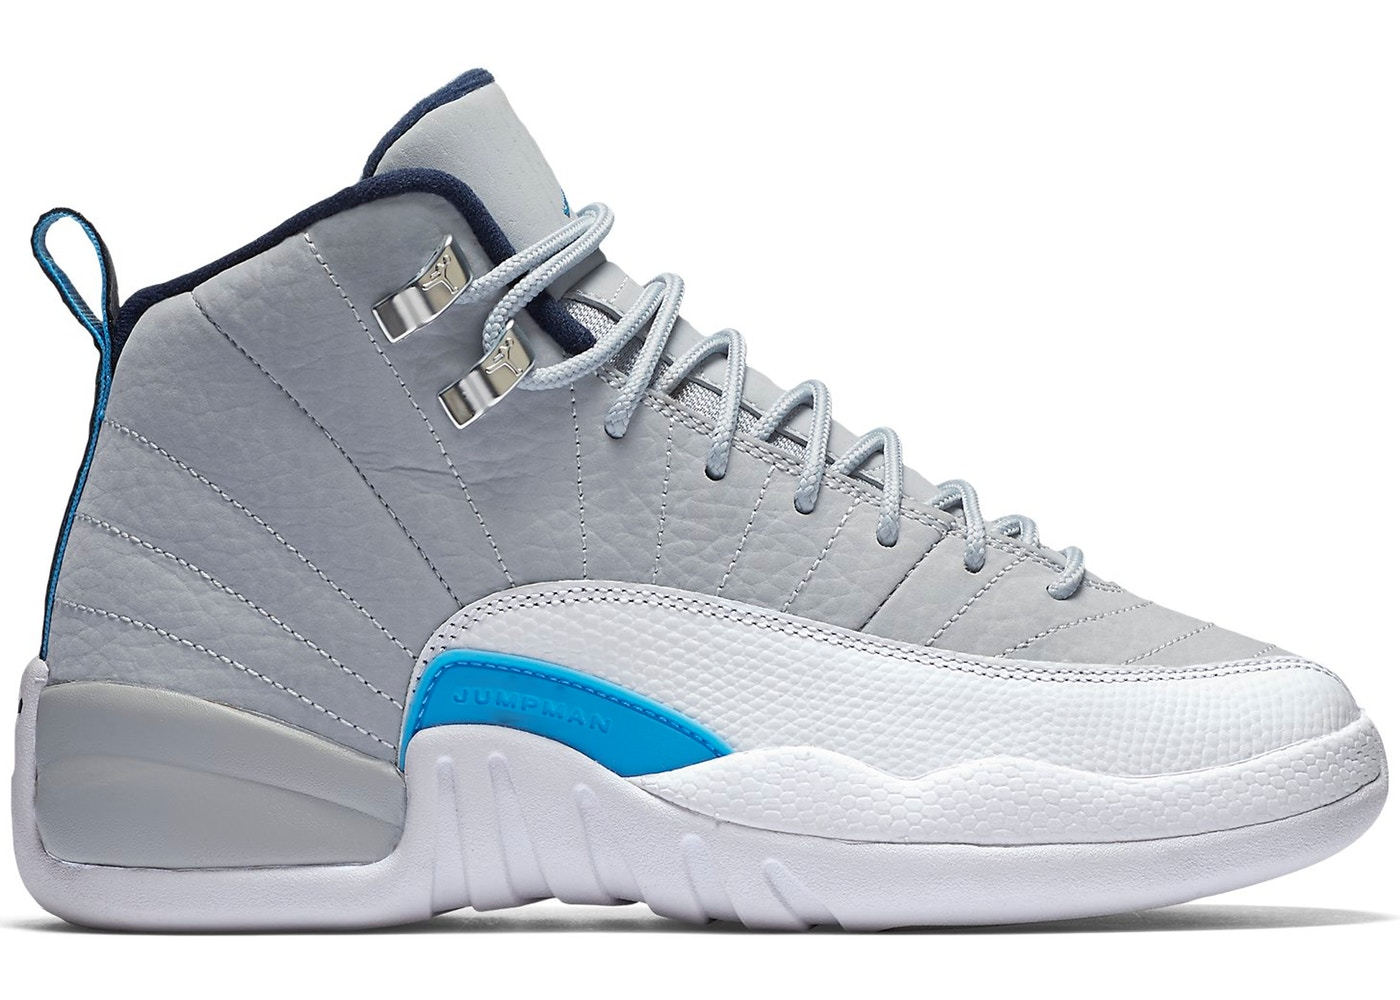 a3432fa6b788 Jordan 12 Retro Grey University Blue (GS) - 153265-007